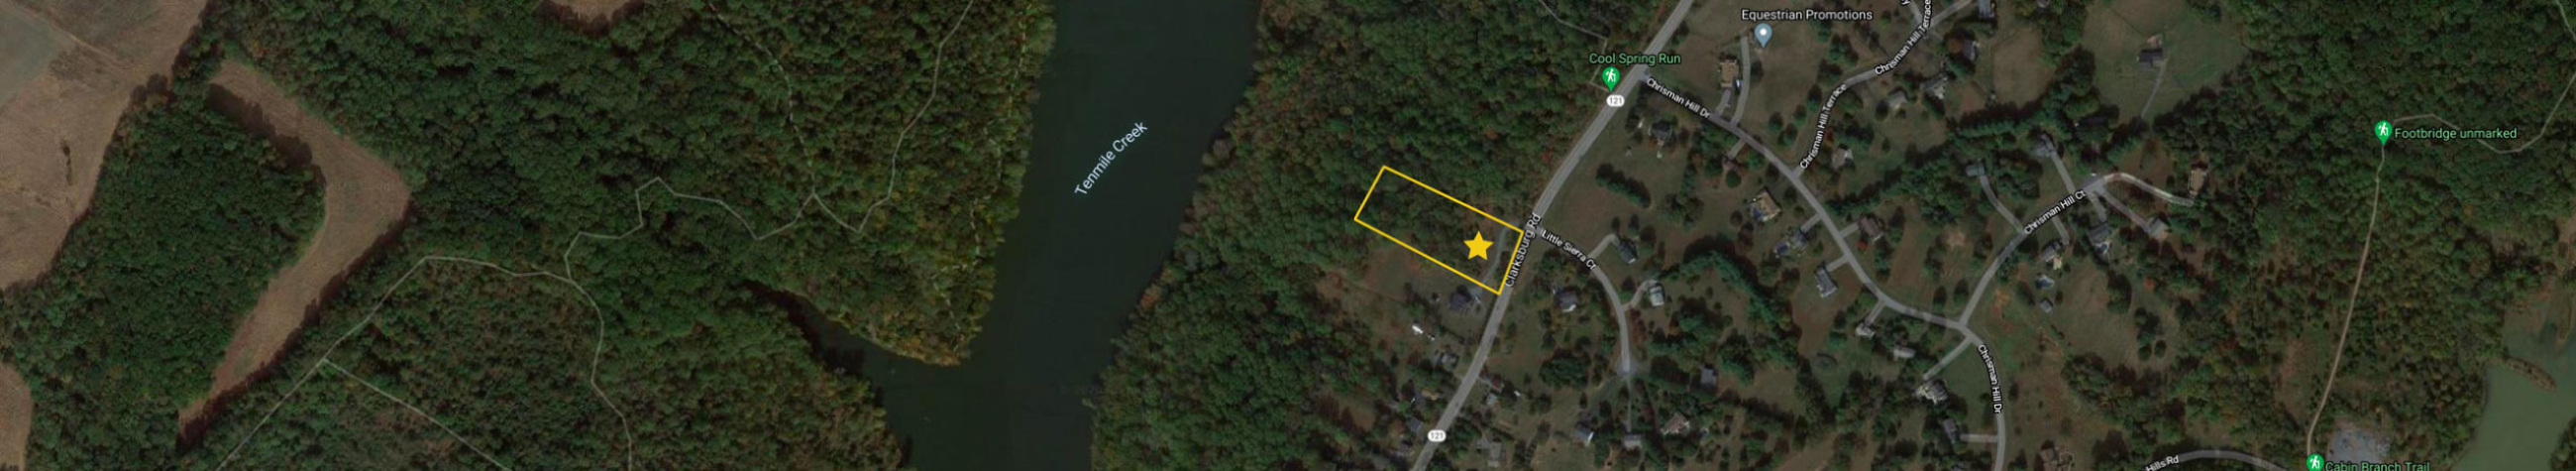 A distant aerial of 21120 Clarksburg Rd, showing Tenmile Creek and the trail head for Cool Spring Run